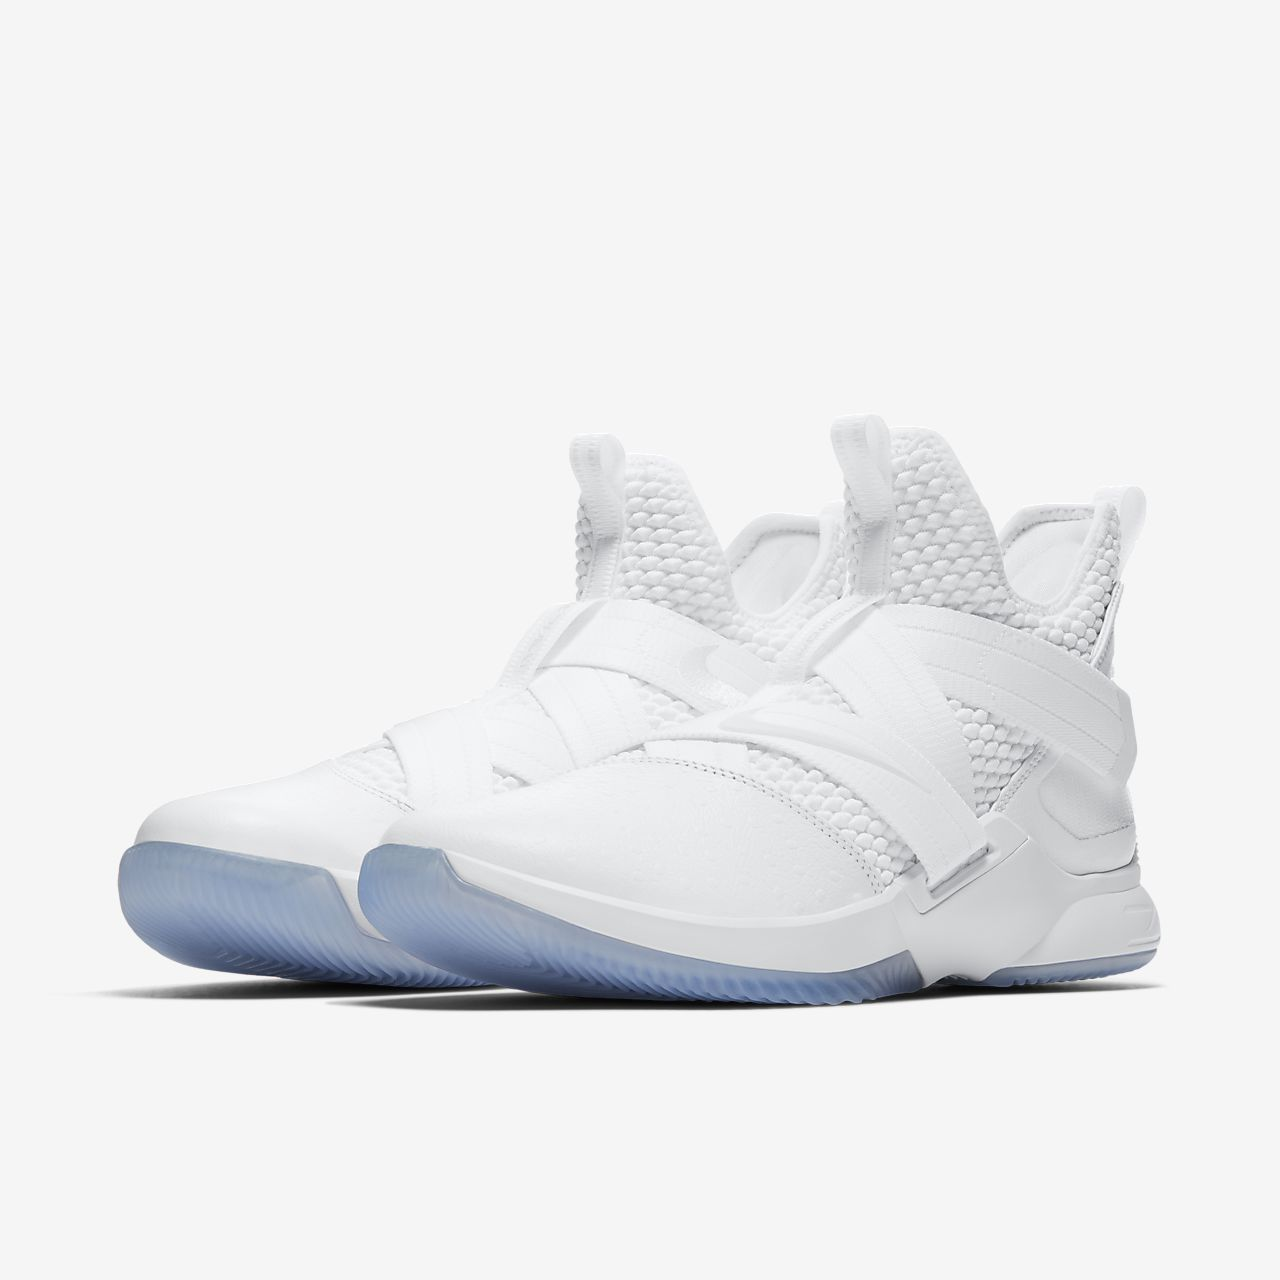 check out 90d04 51f2a Low Resolution LeBron Soldier 12 SFG Basketbalschoen LeBron Soldier 12 SFG  Basketbalschoen